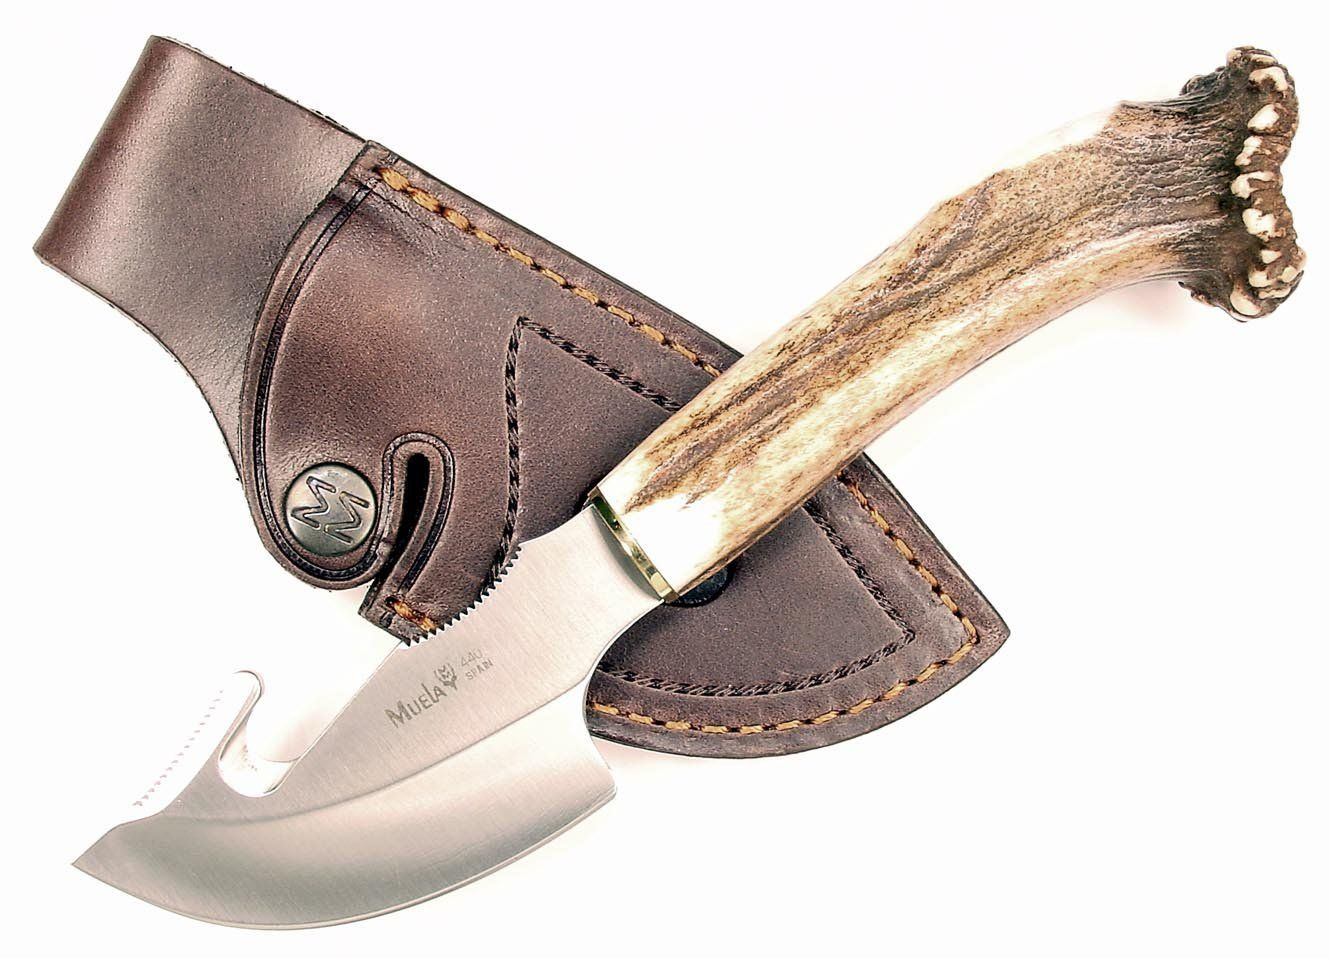 Ruko 3 1 8 Inch Blade Gut Hook Skinning Knife With Genuine Deer Horn Crown Handle And Leather Sheath Check Out The Image Skinning Knife Leather Sheath Knife